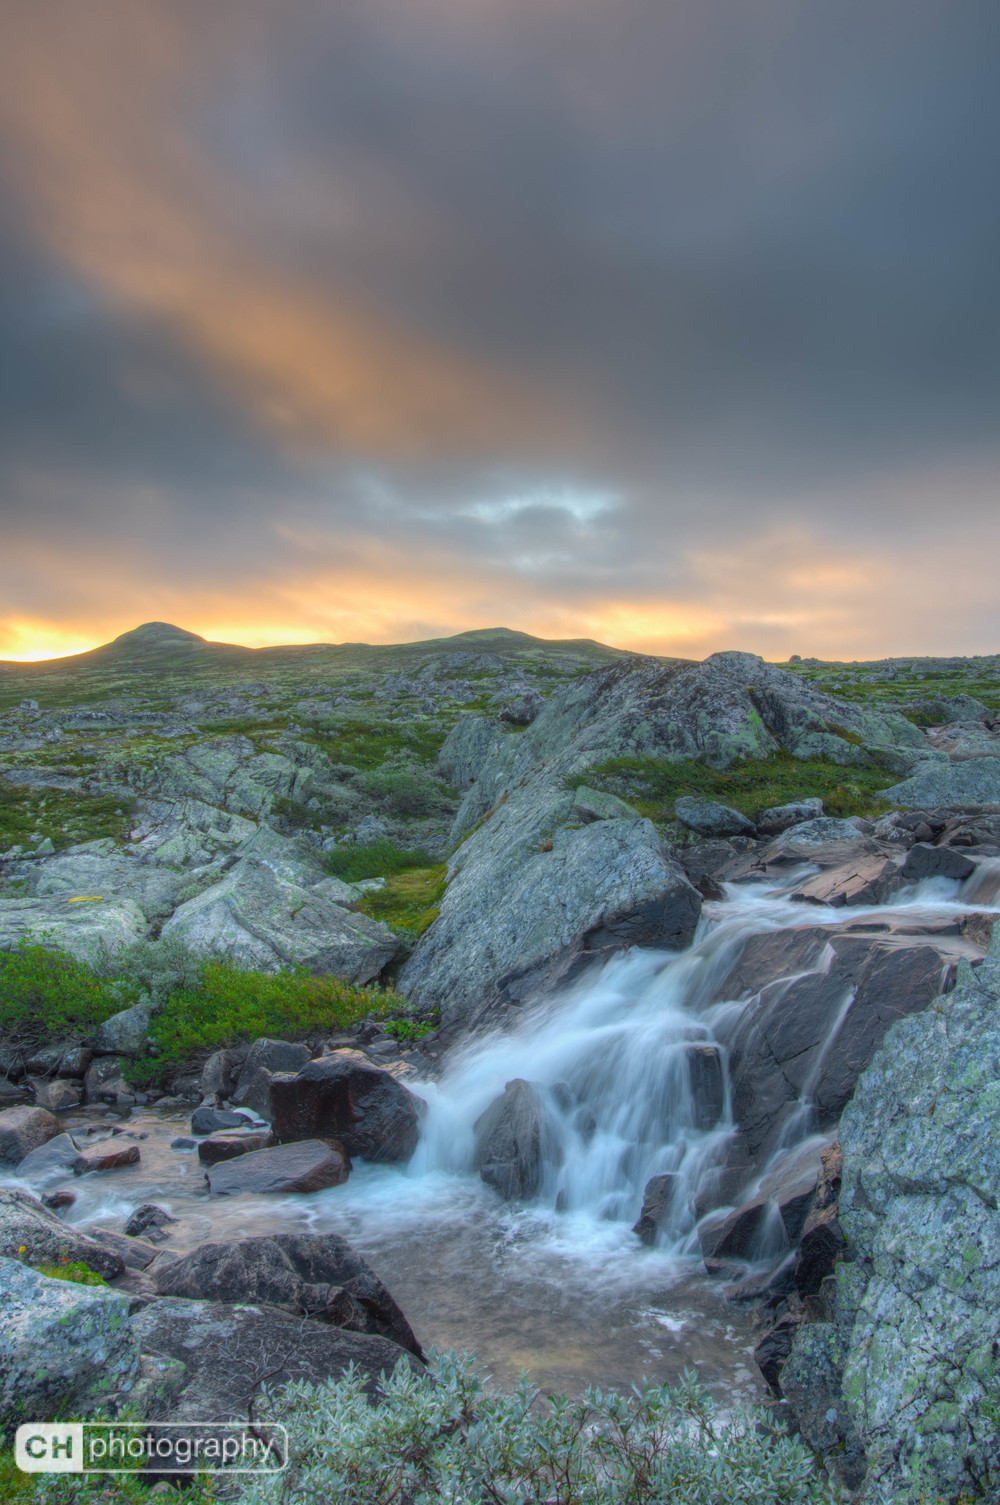 Sunrise at Hardangervidda